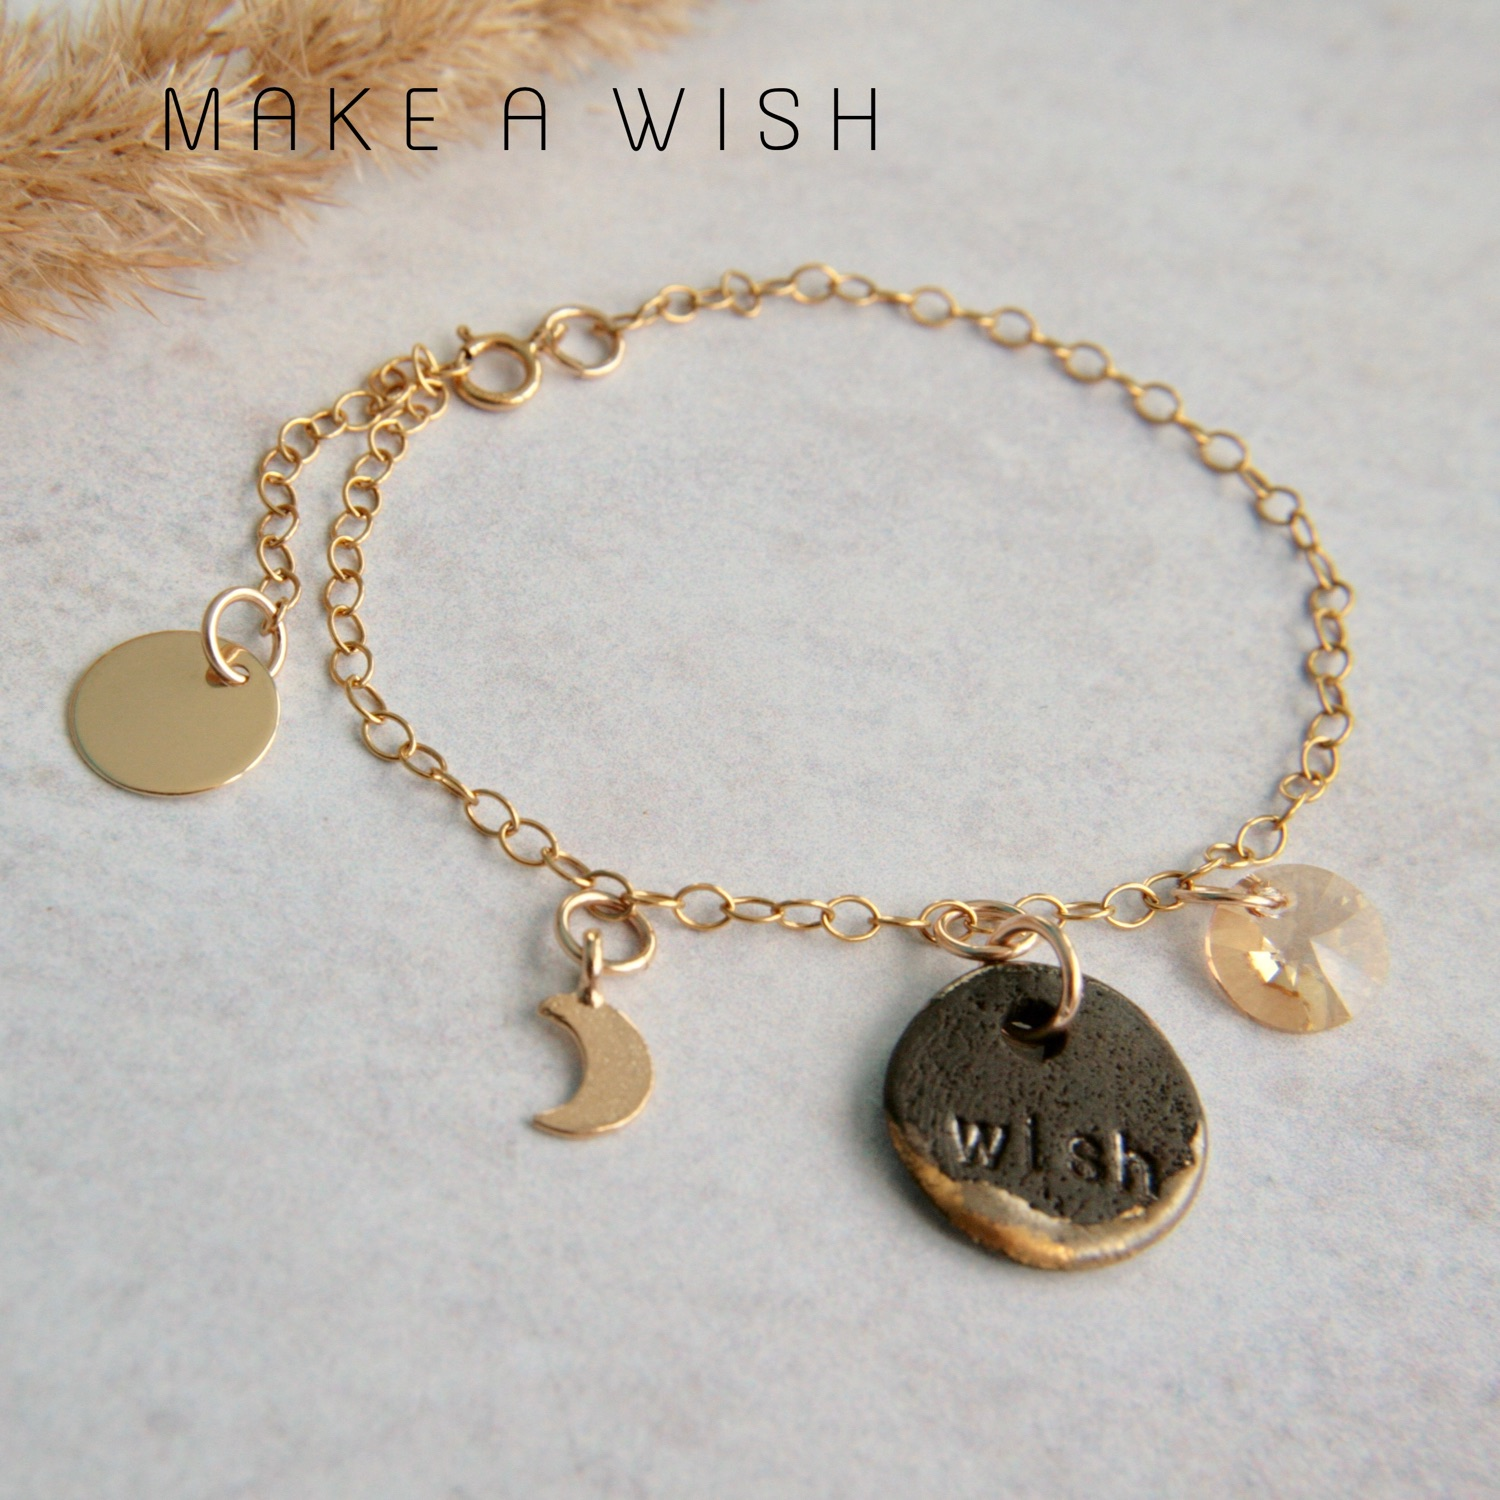 gold bracelet with handmade charms